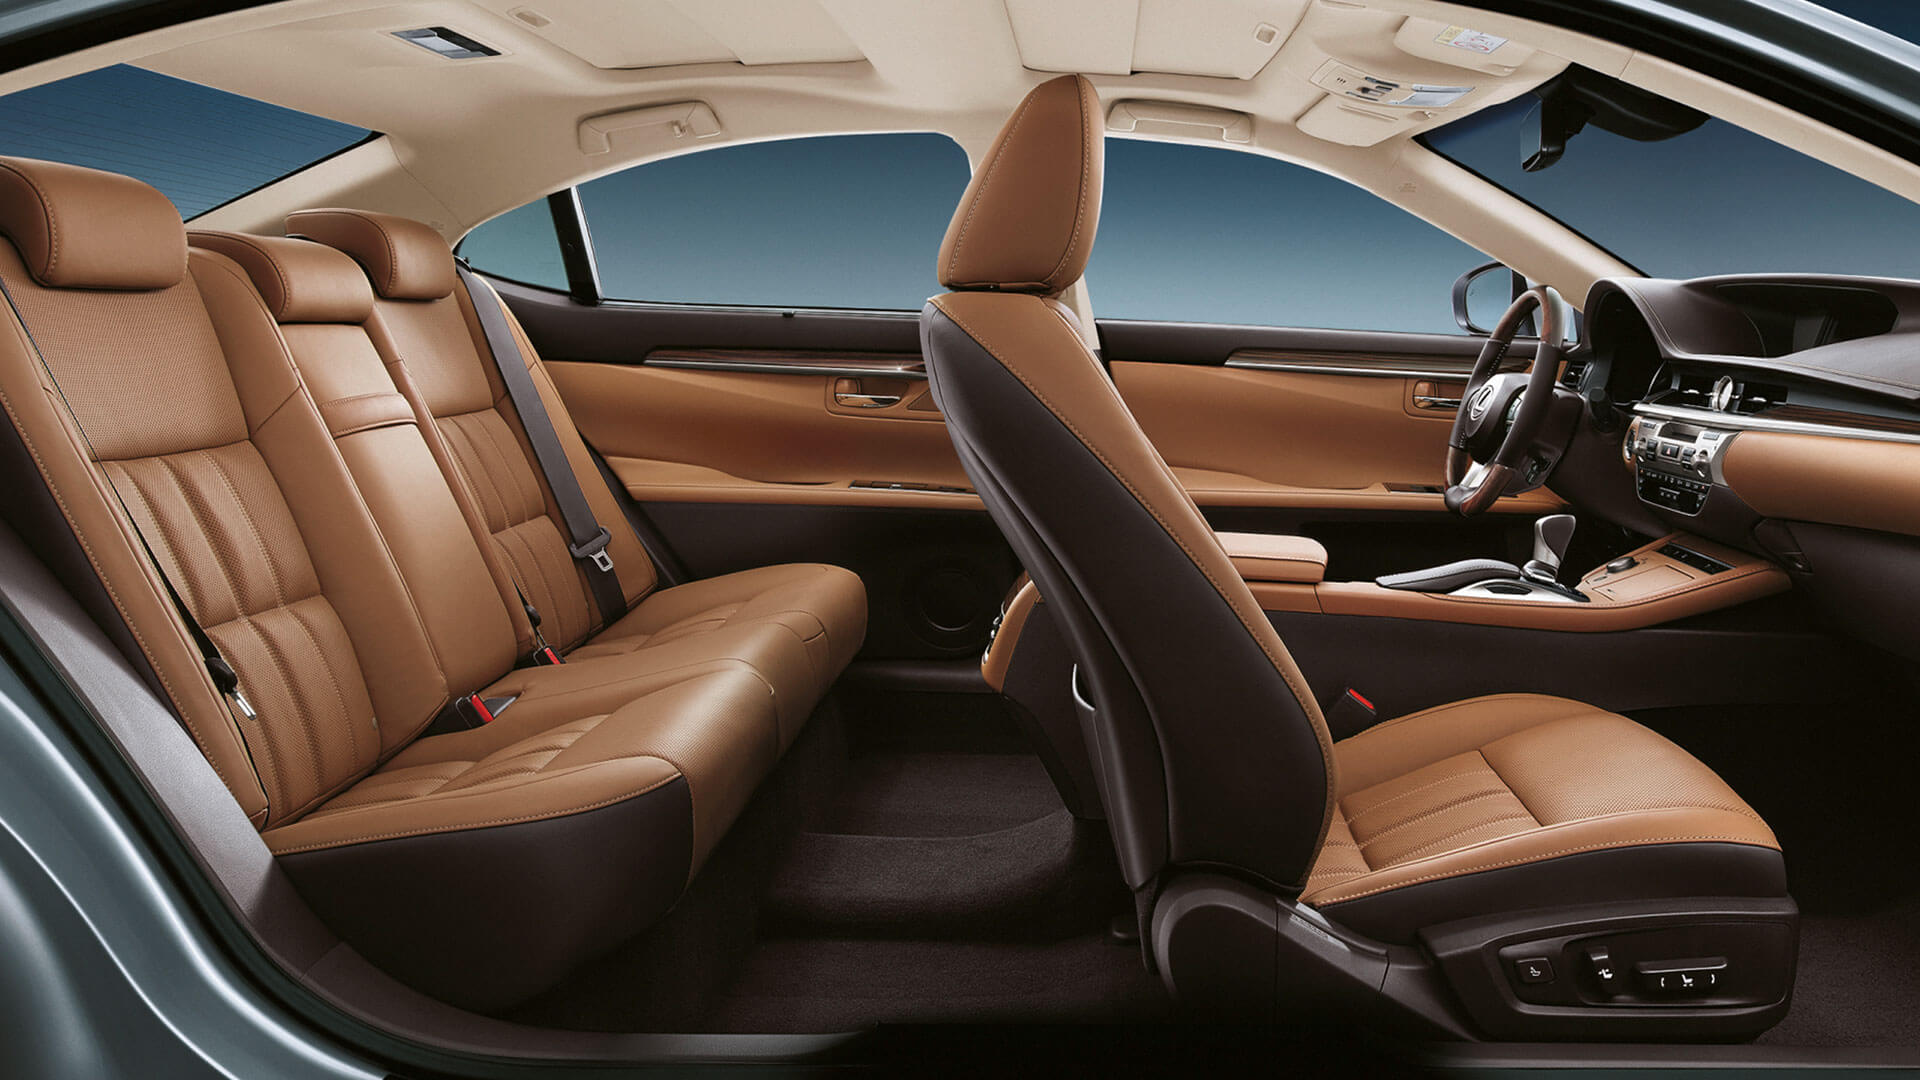 2017 lexus es gallery 006 interior